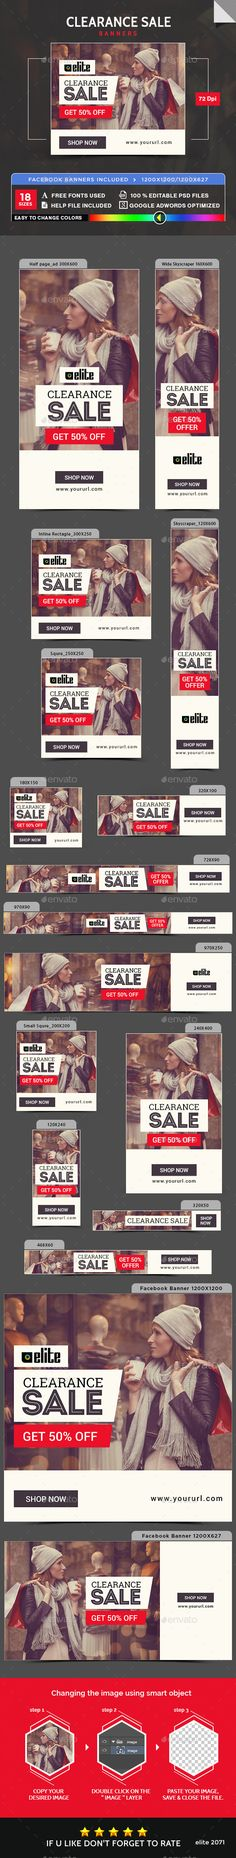 Clearance Sale Banners Template PSD